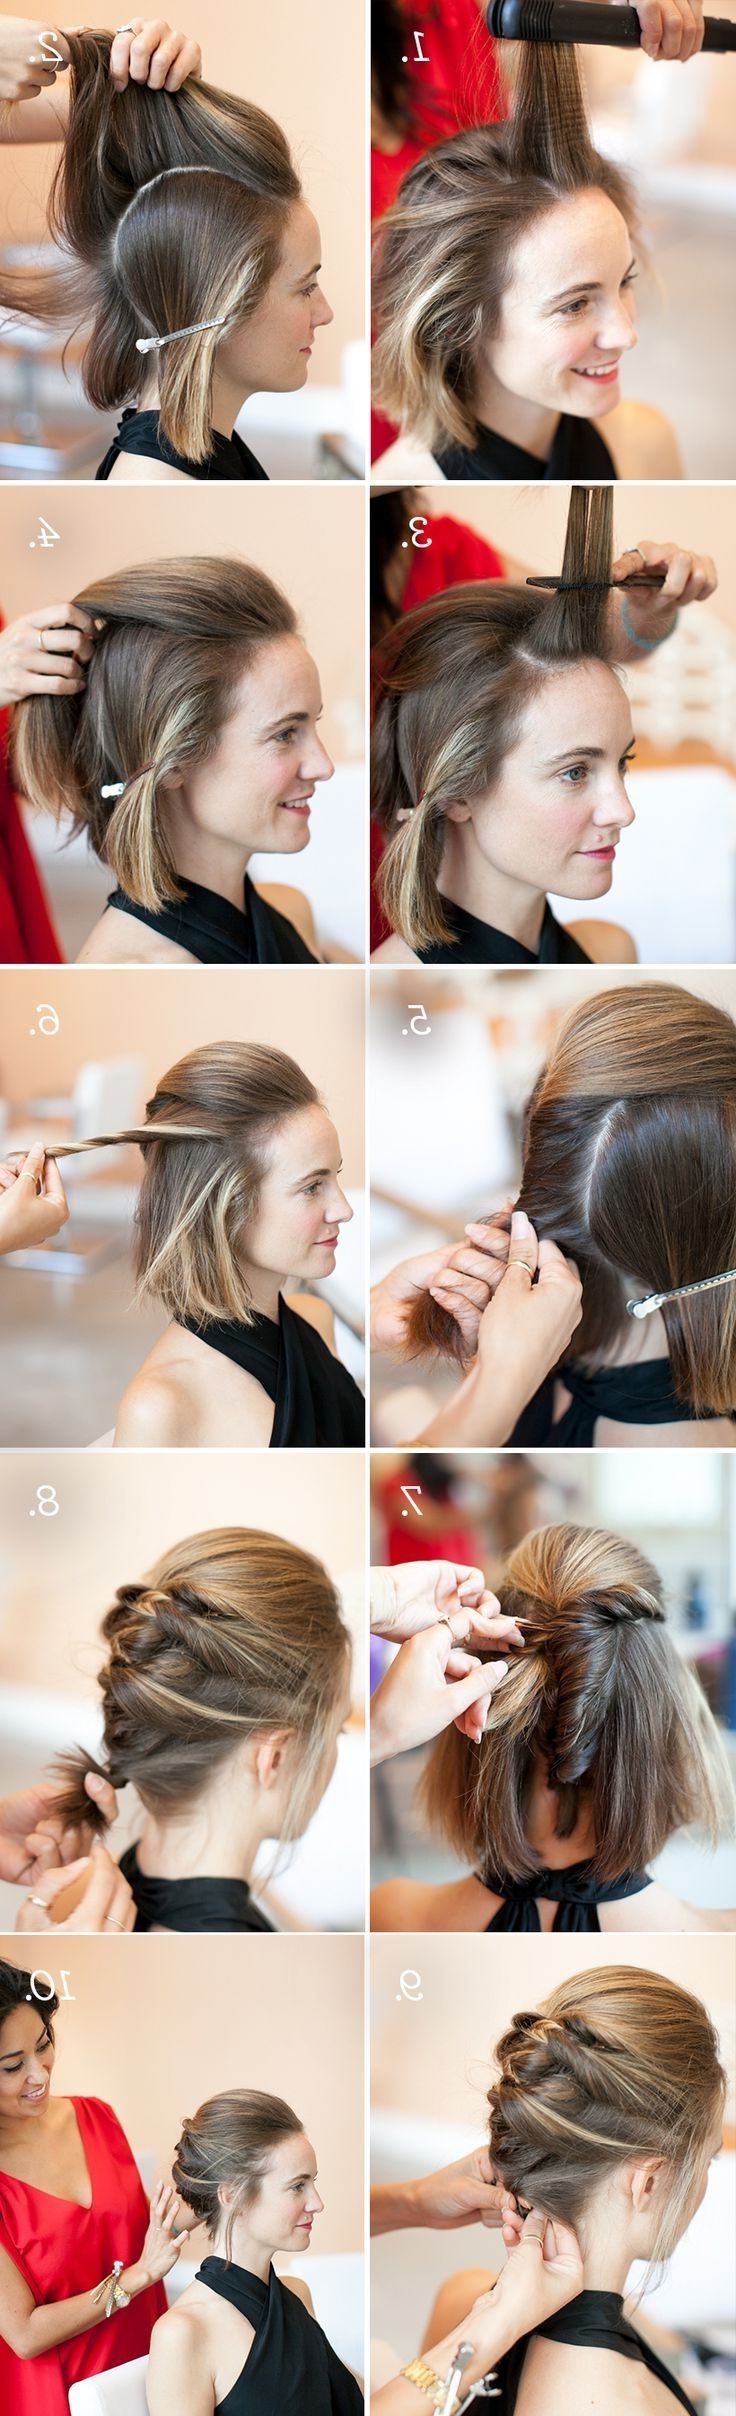 How To : Textured French Twist Stepstep – Daily New Fashions Inside Updo Hairstyles For Bob Hairstyles (View 8 of 15)